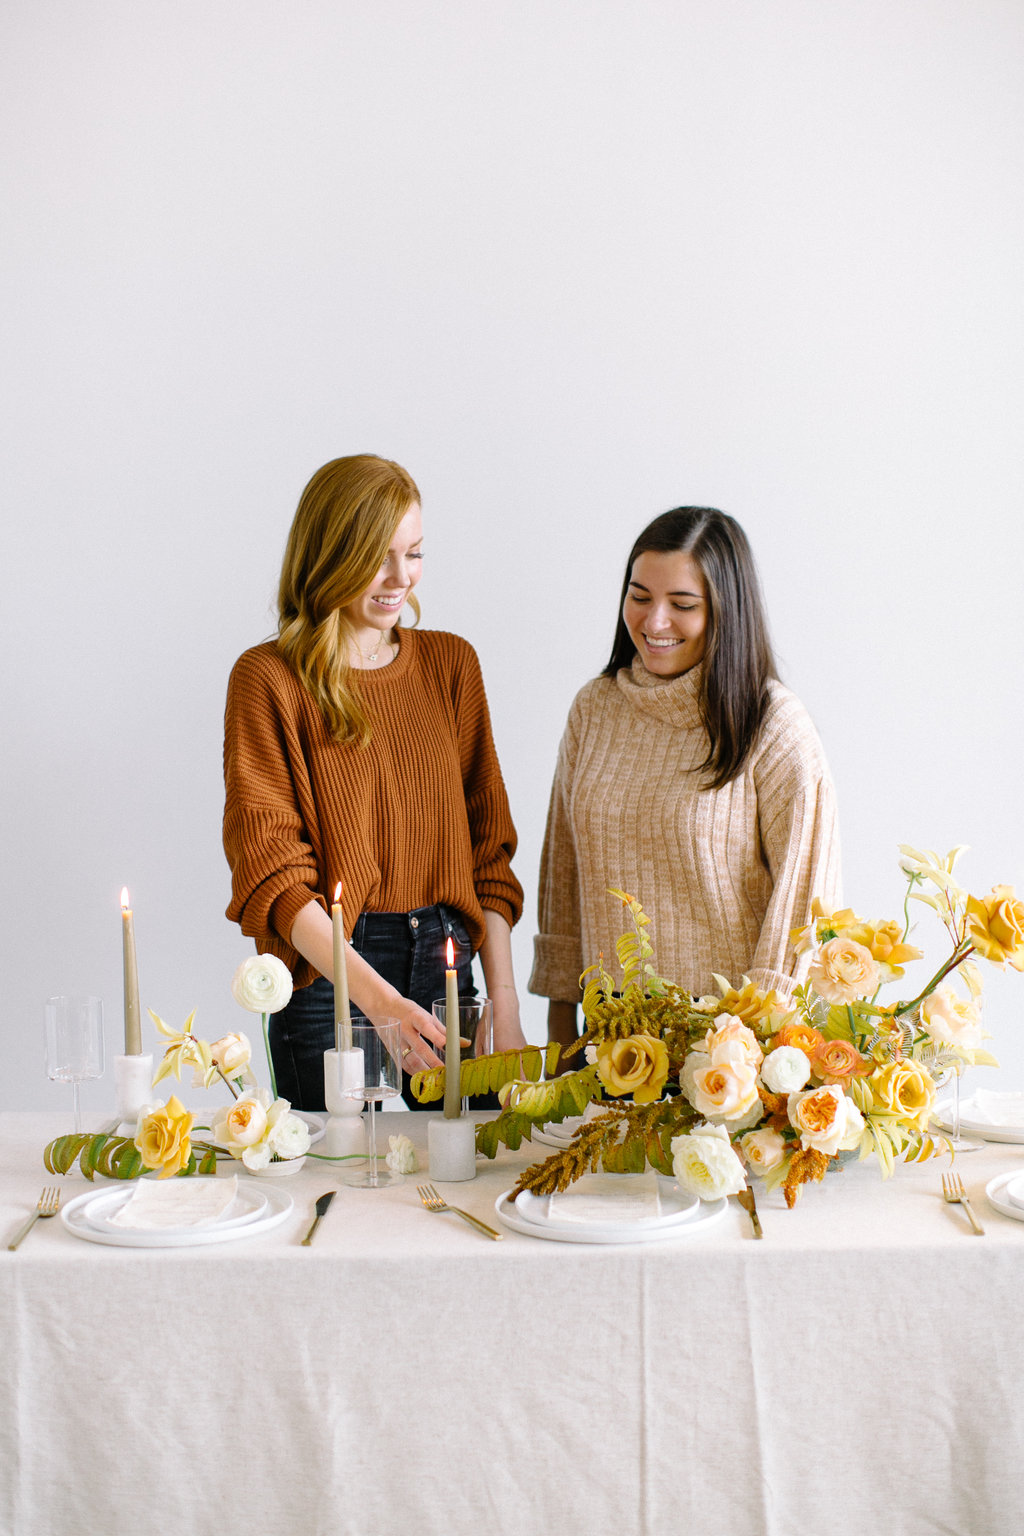 Thanksgivingstyledshoot098.JPG